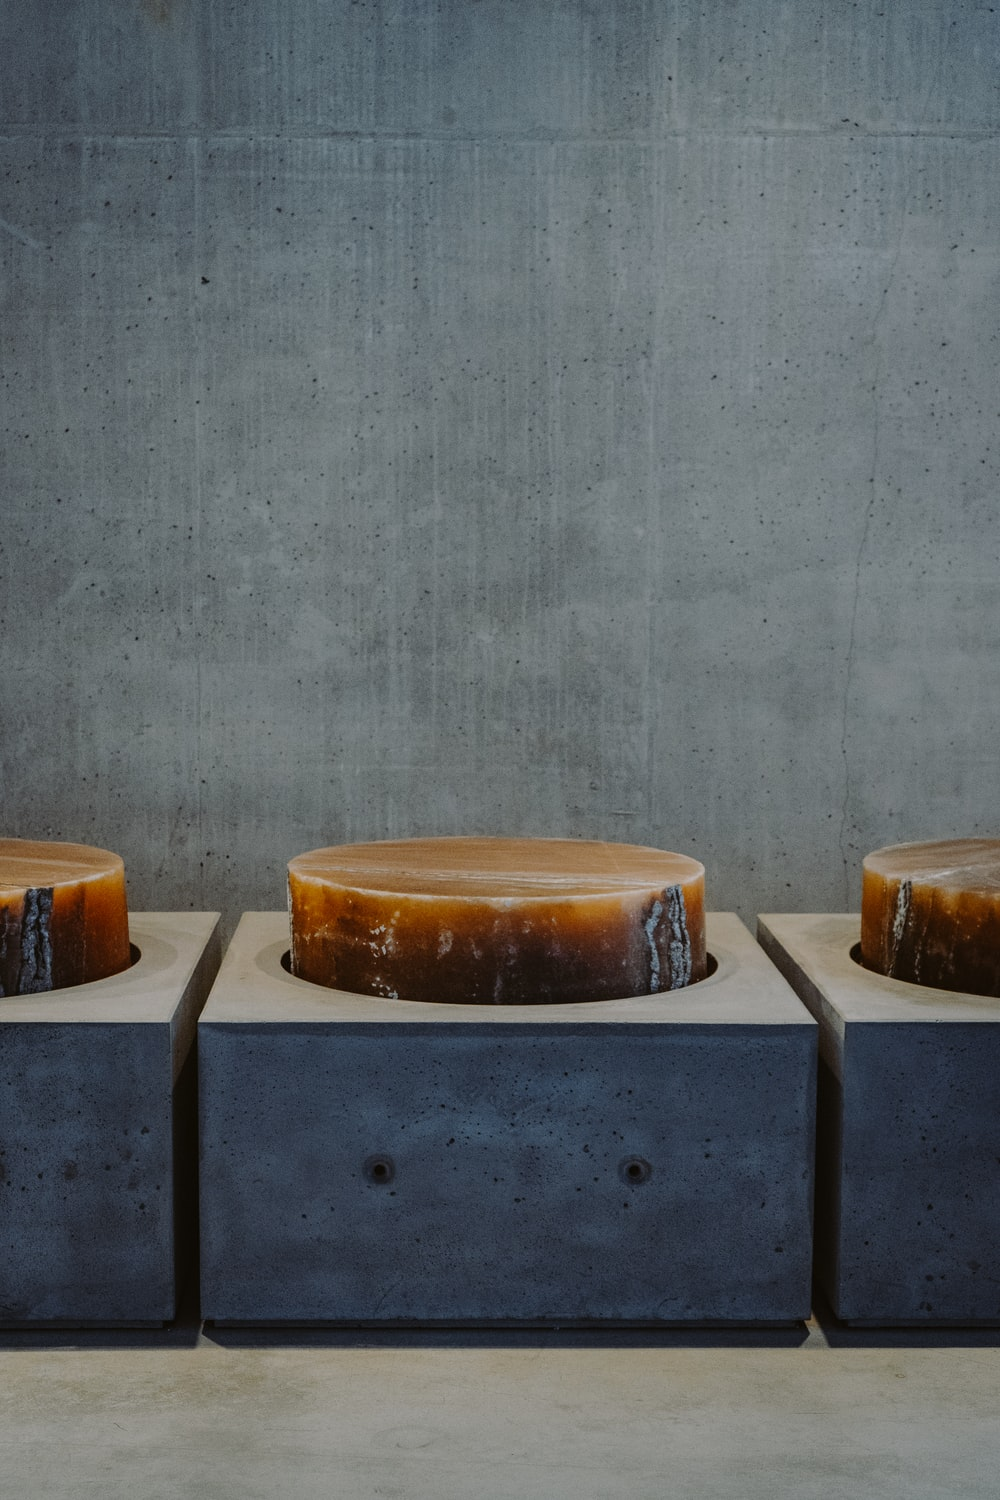 3 brown round cakes on blue table